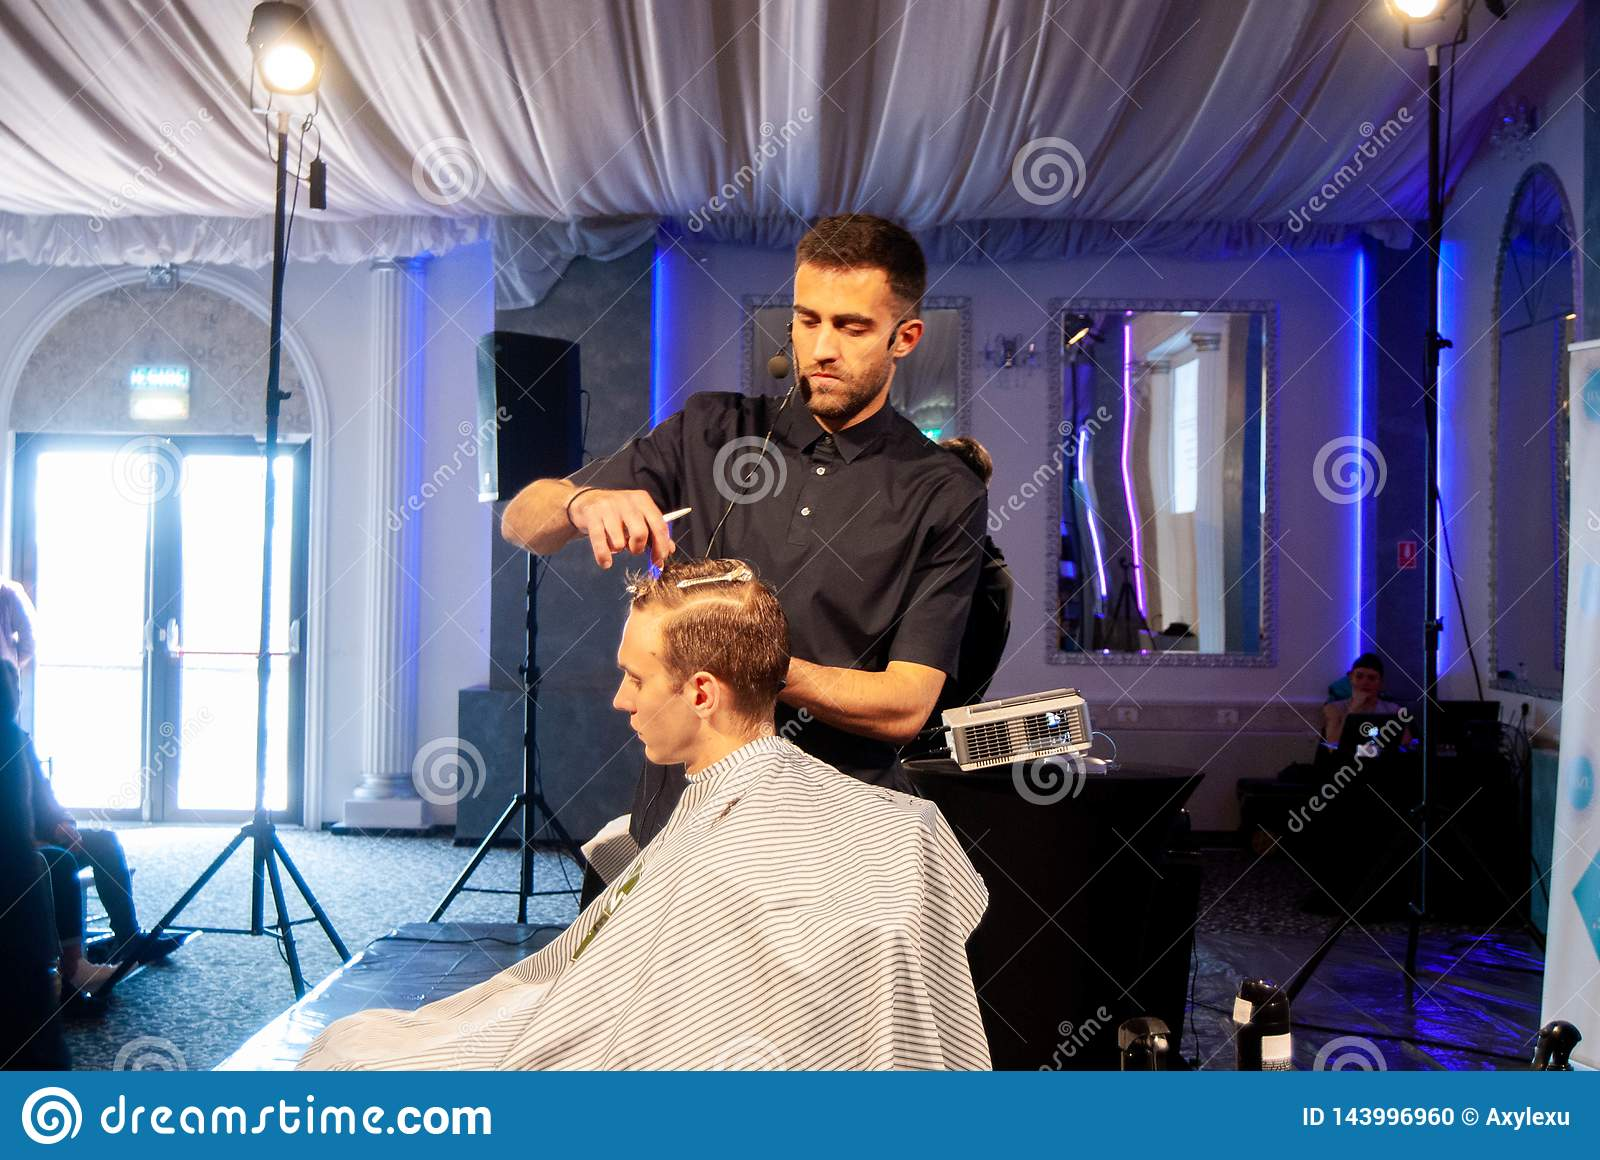 Romanian Best Barber Of 2019 Contest Editorial Image - Image